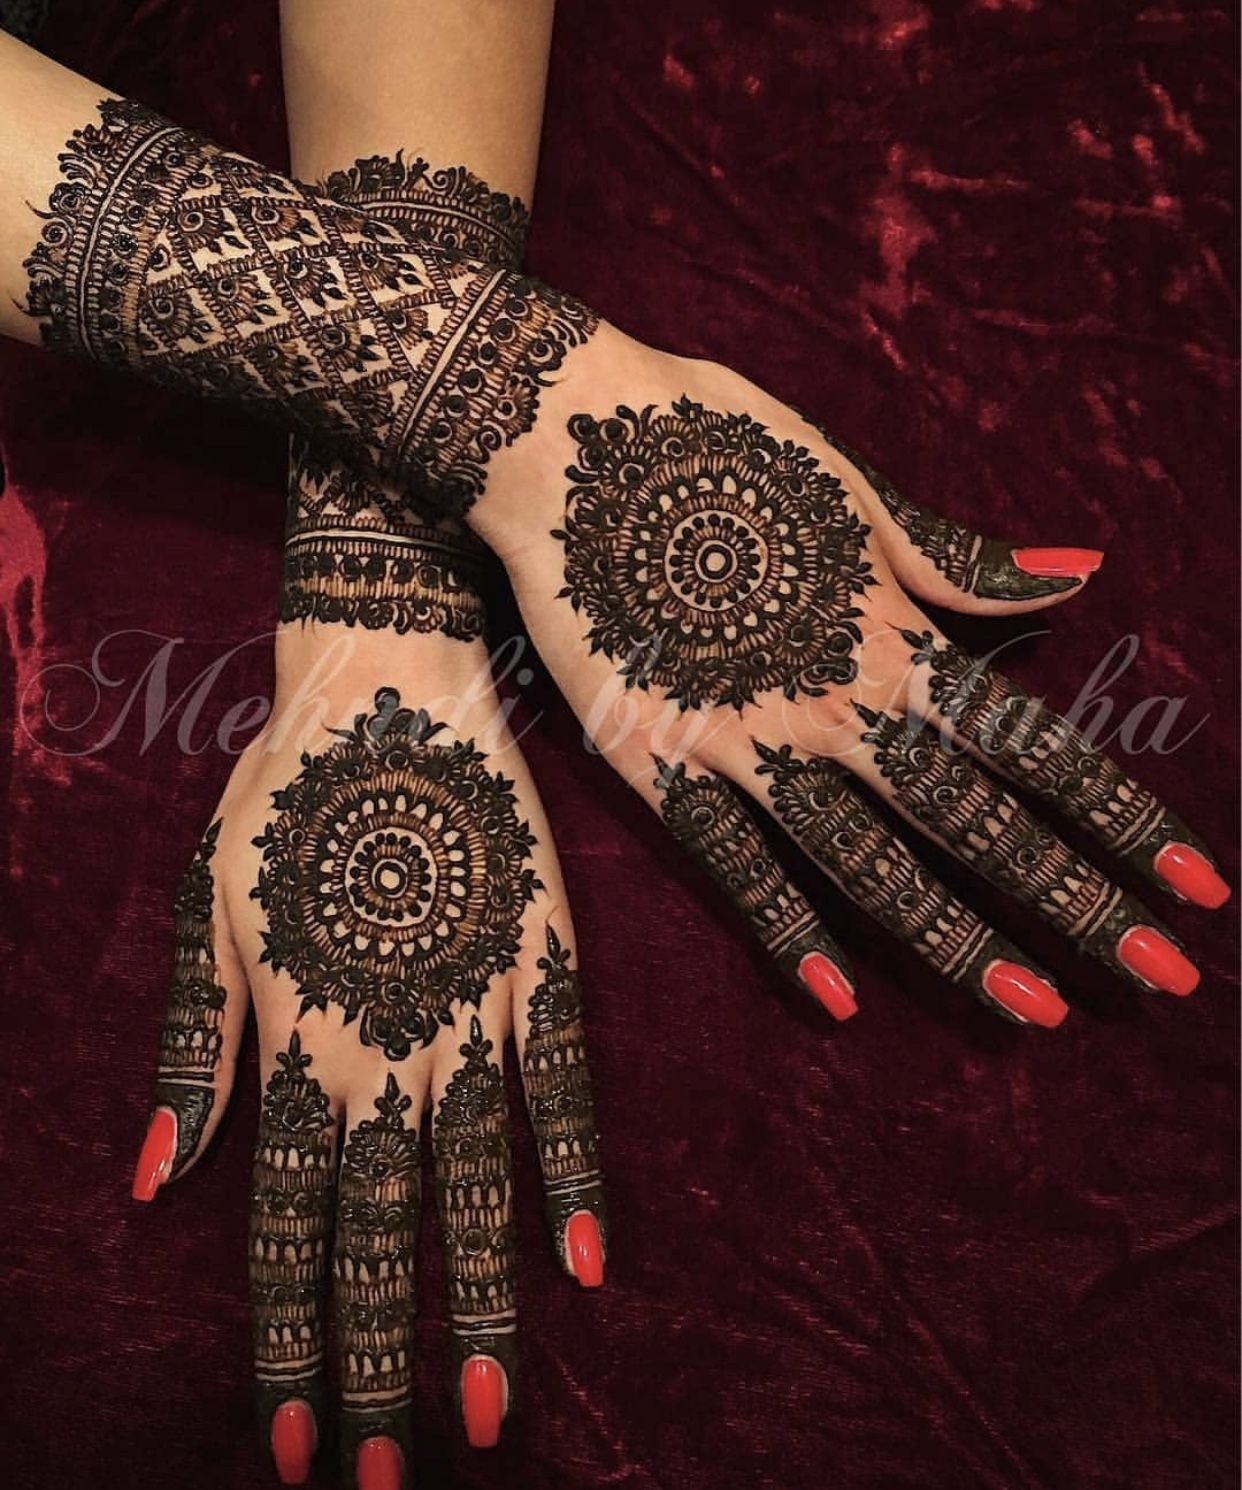 Mandala bridal Mehndi design | Engagement mehndi designs, Mehndi designs,  Wedding mehndi designs